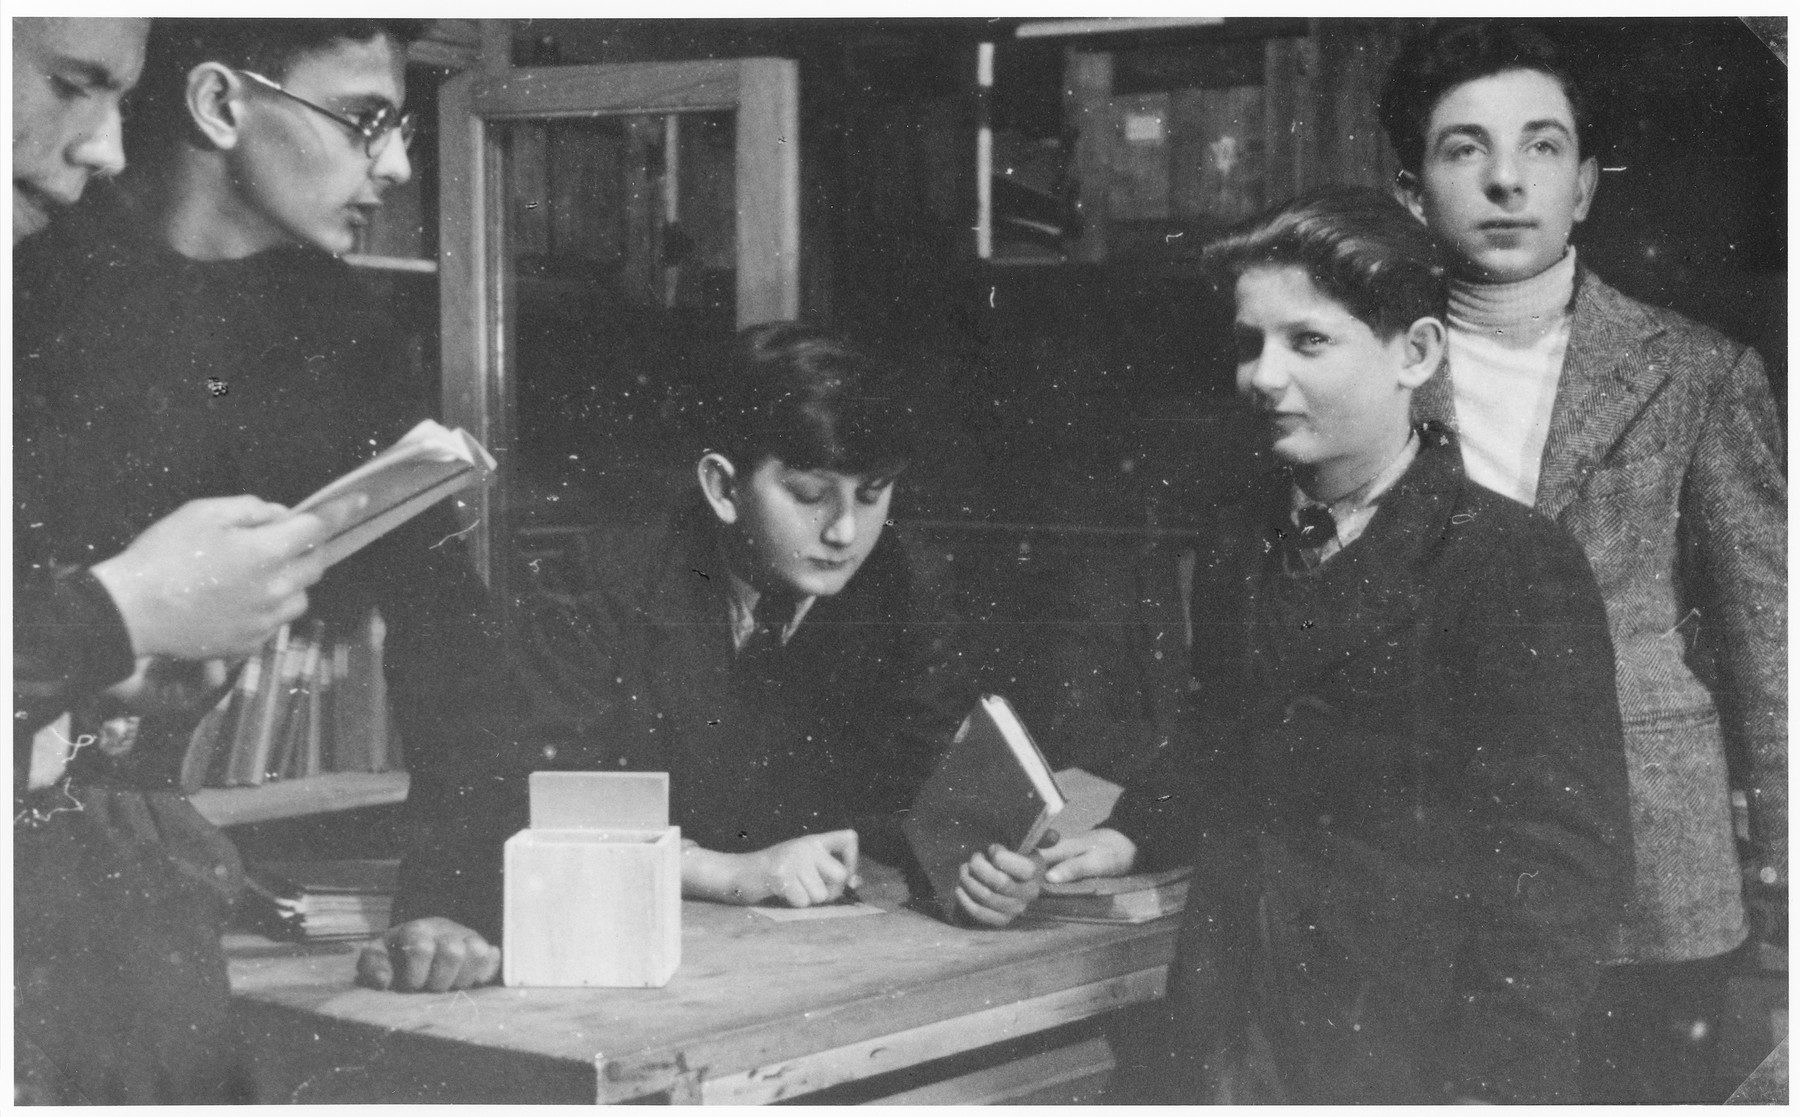 Ivar Segalowitz (center) and four other Jewish youths examine books in the library of the Champigny children's home.  Perry Shulman is on the far right.